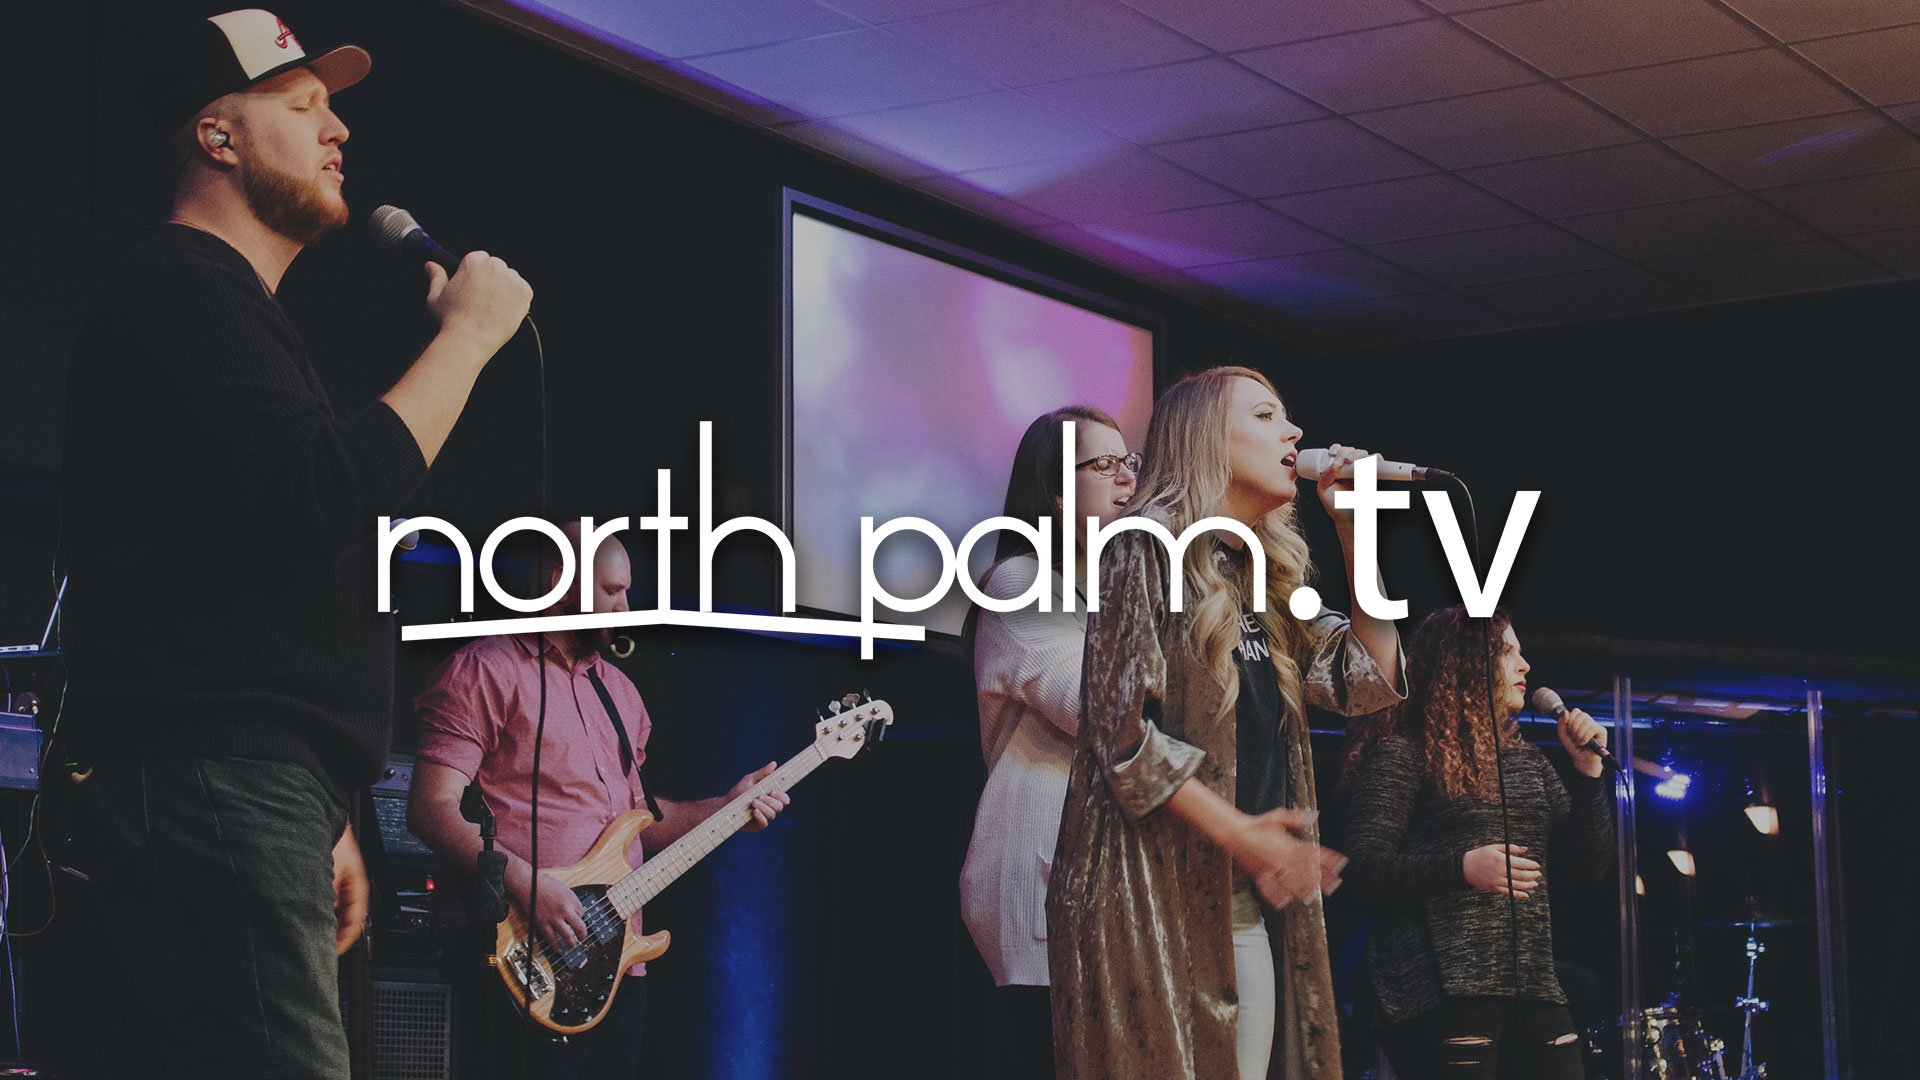 north palm tv